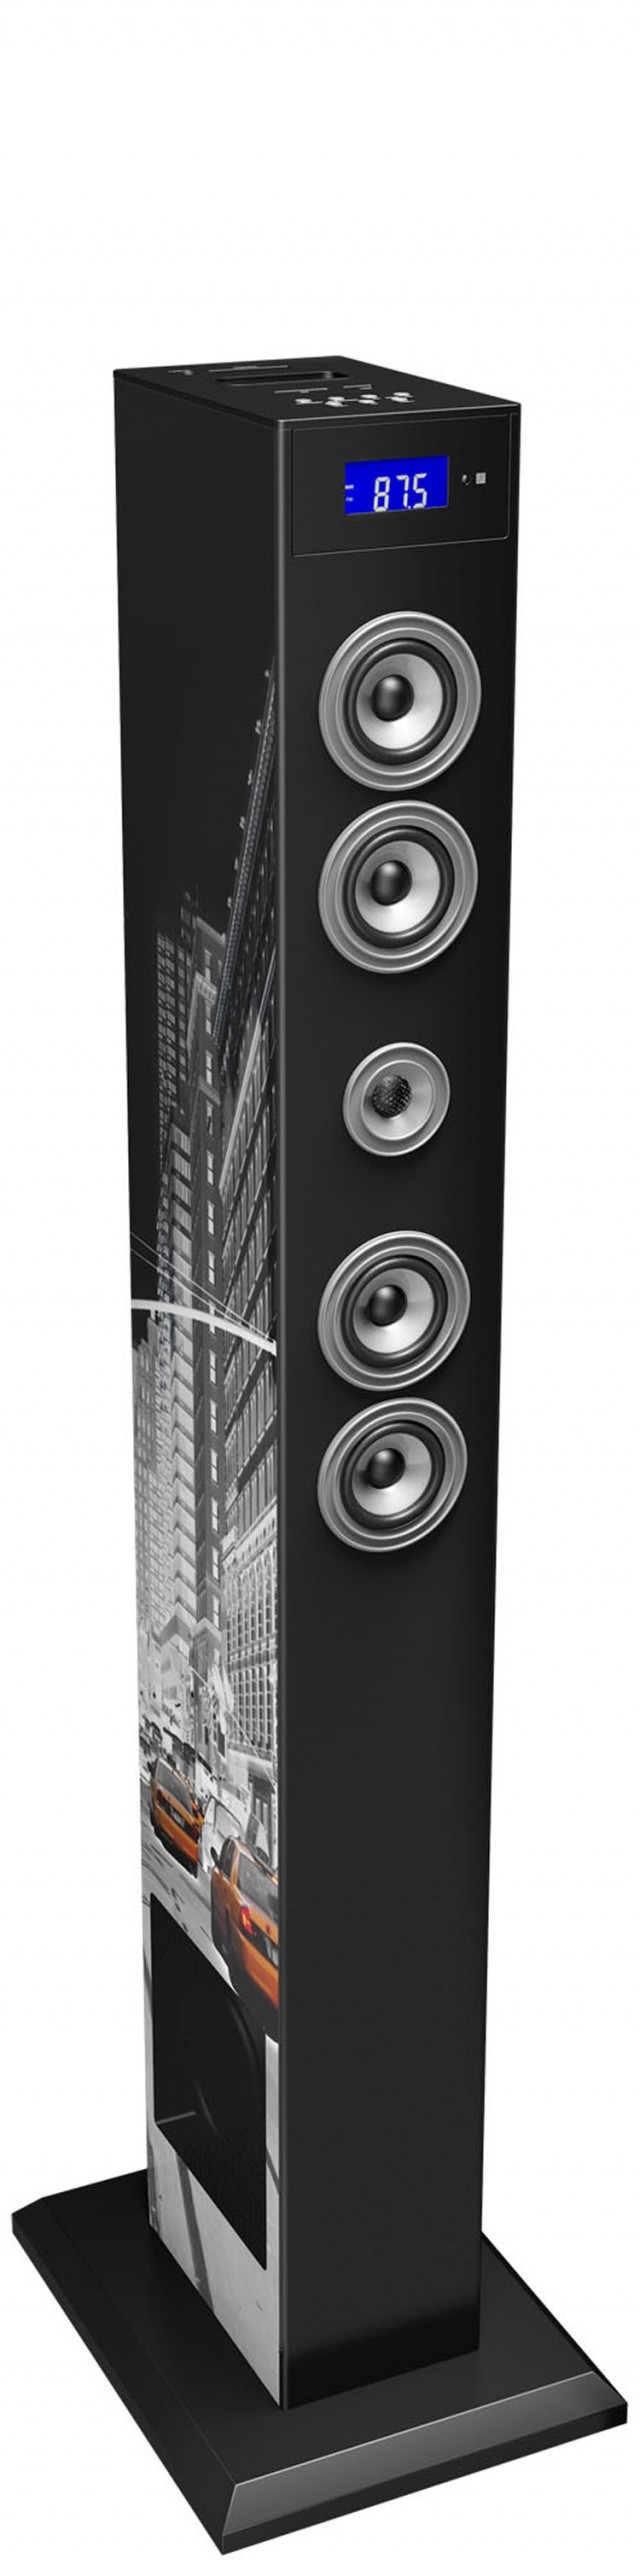 Multimedia tower with adaptador Bluetooth (New-York) - Packshot